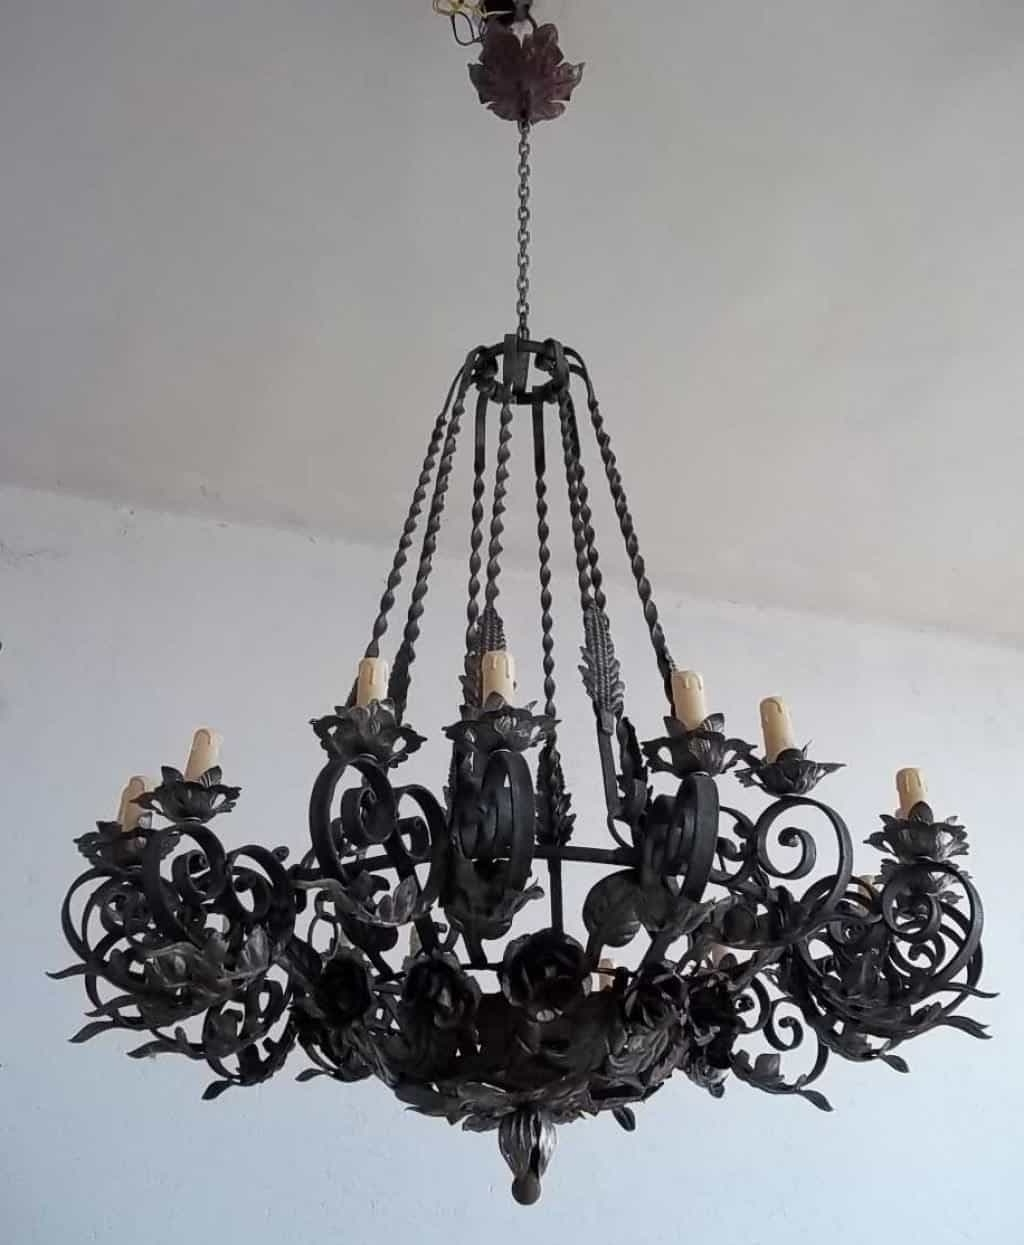 2018 Black Vintage Wrought Iron Chandelier Hung In The White Ceiling With Vintage Wrought Iron Chandelier (View 4 of 15)